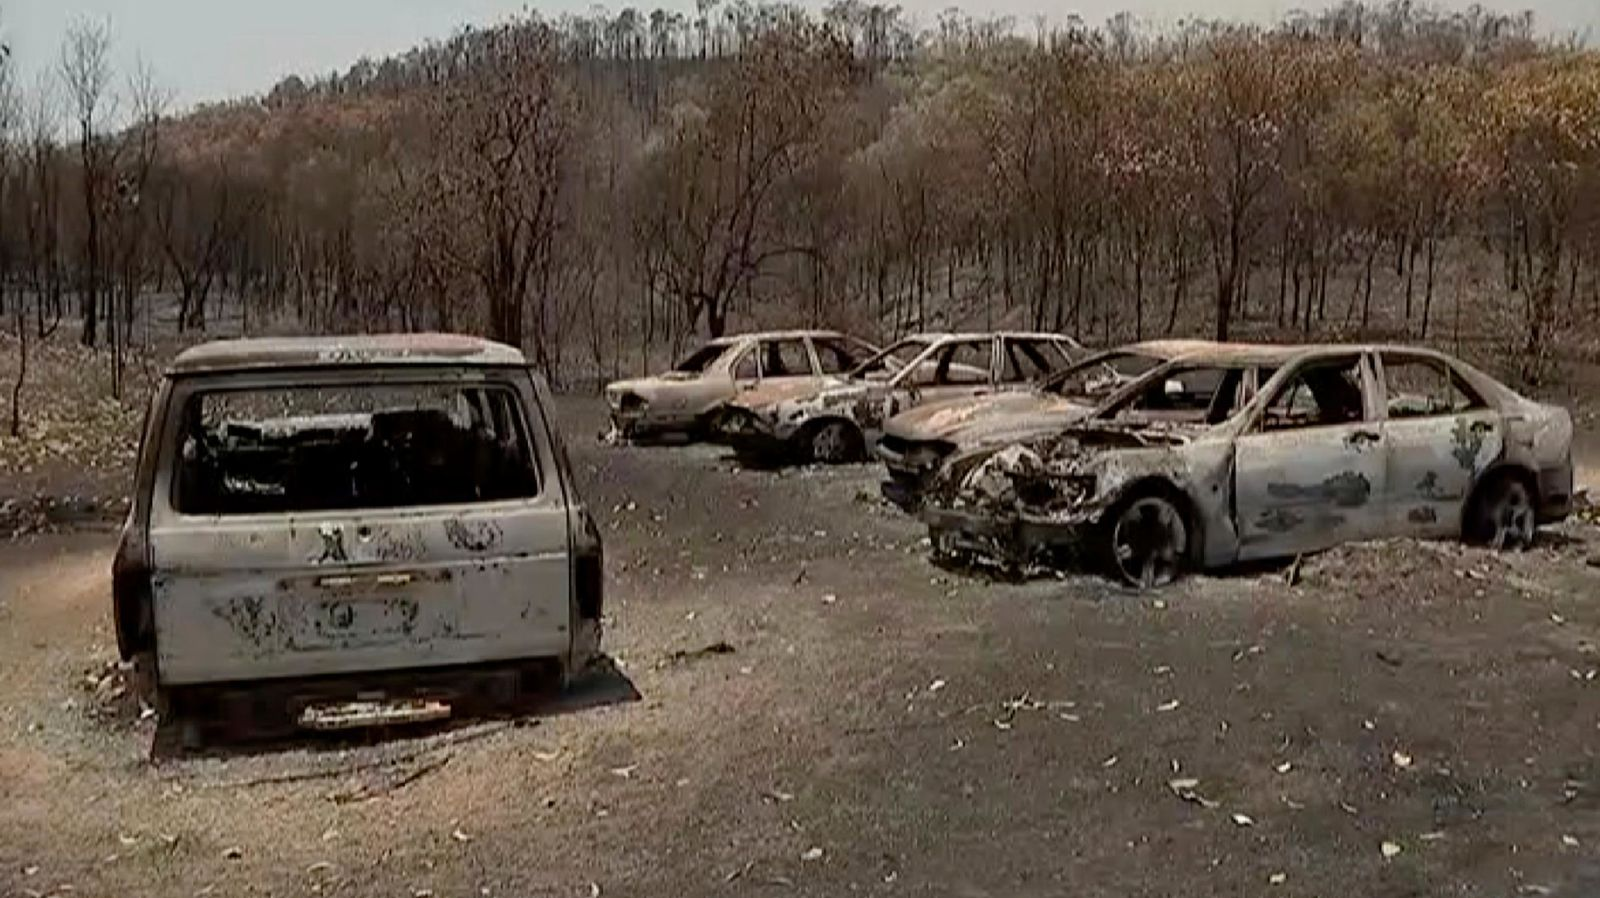 This image made from video shows destroyed cars after wildfires in Yeppoon, Queensland state, Australia, Wednesday, Nov. 13, 2019. (Australian Broadcasting Corporation via AP)